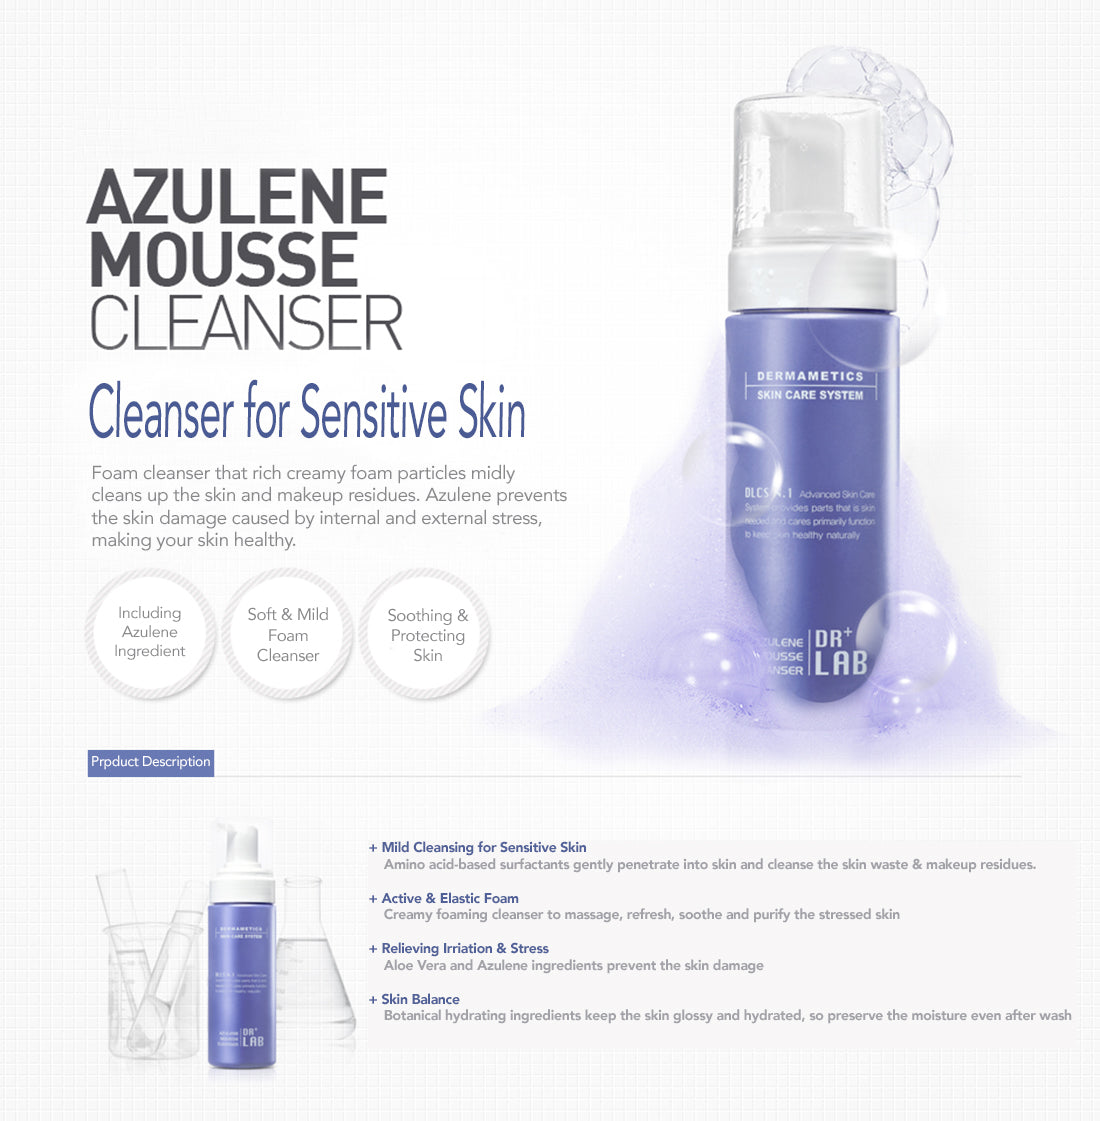 Dr+Lab Azulene Mousse Cleanser Product Description 2